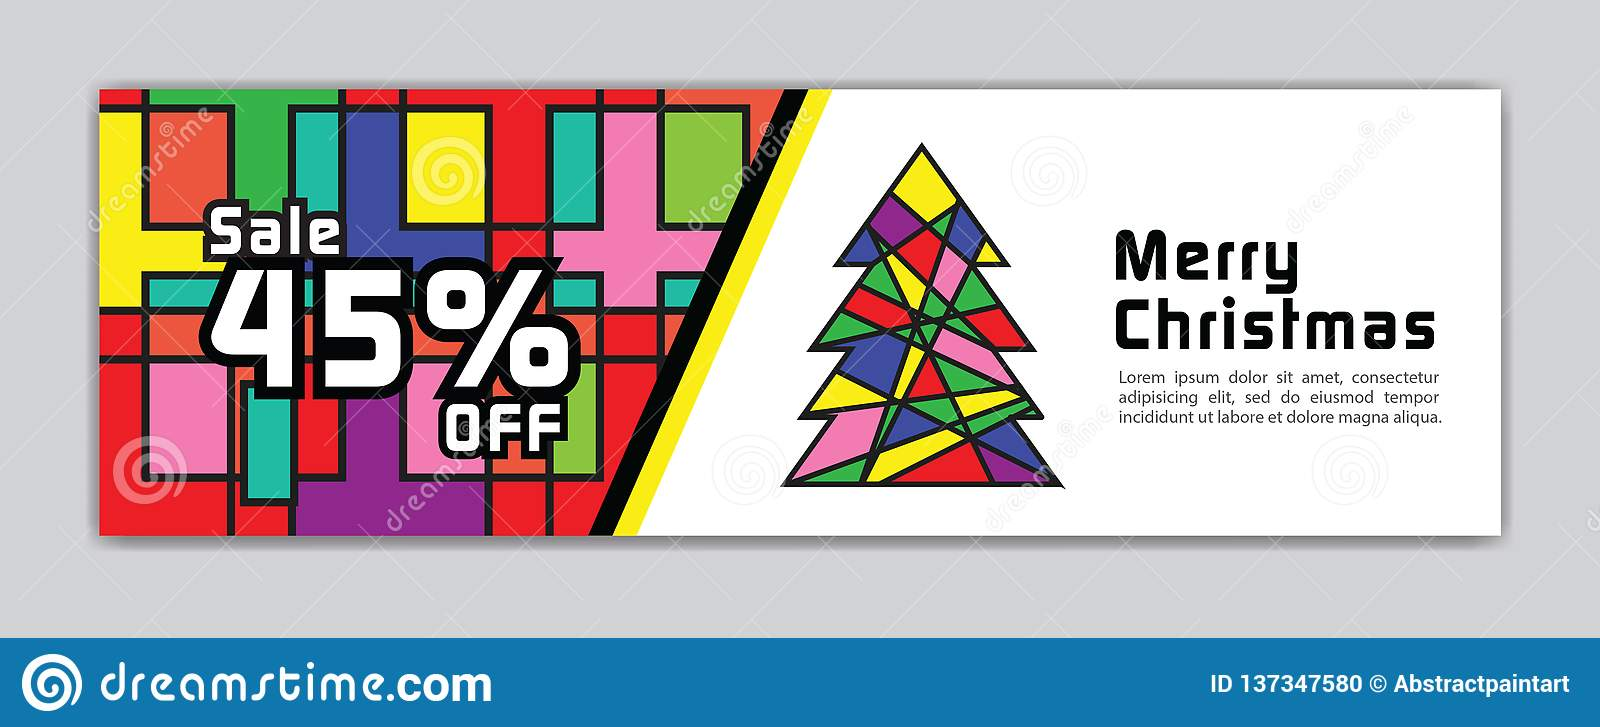 Christmas banner, Sale banner template, Horizontal christmas posters, cards, headers, website, colorful background, vector